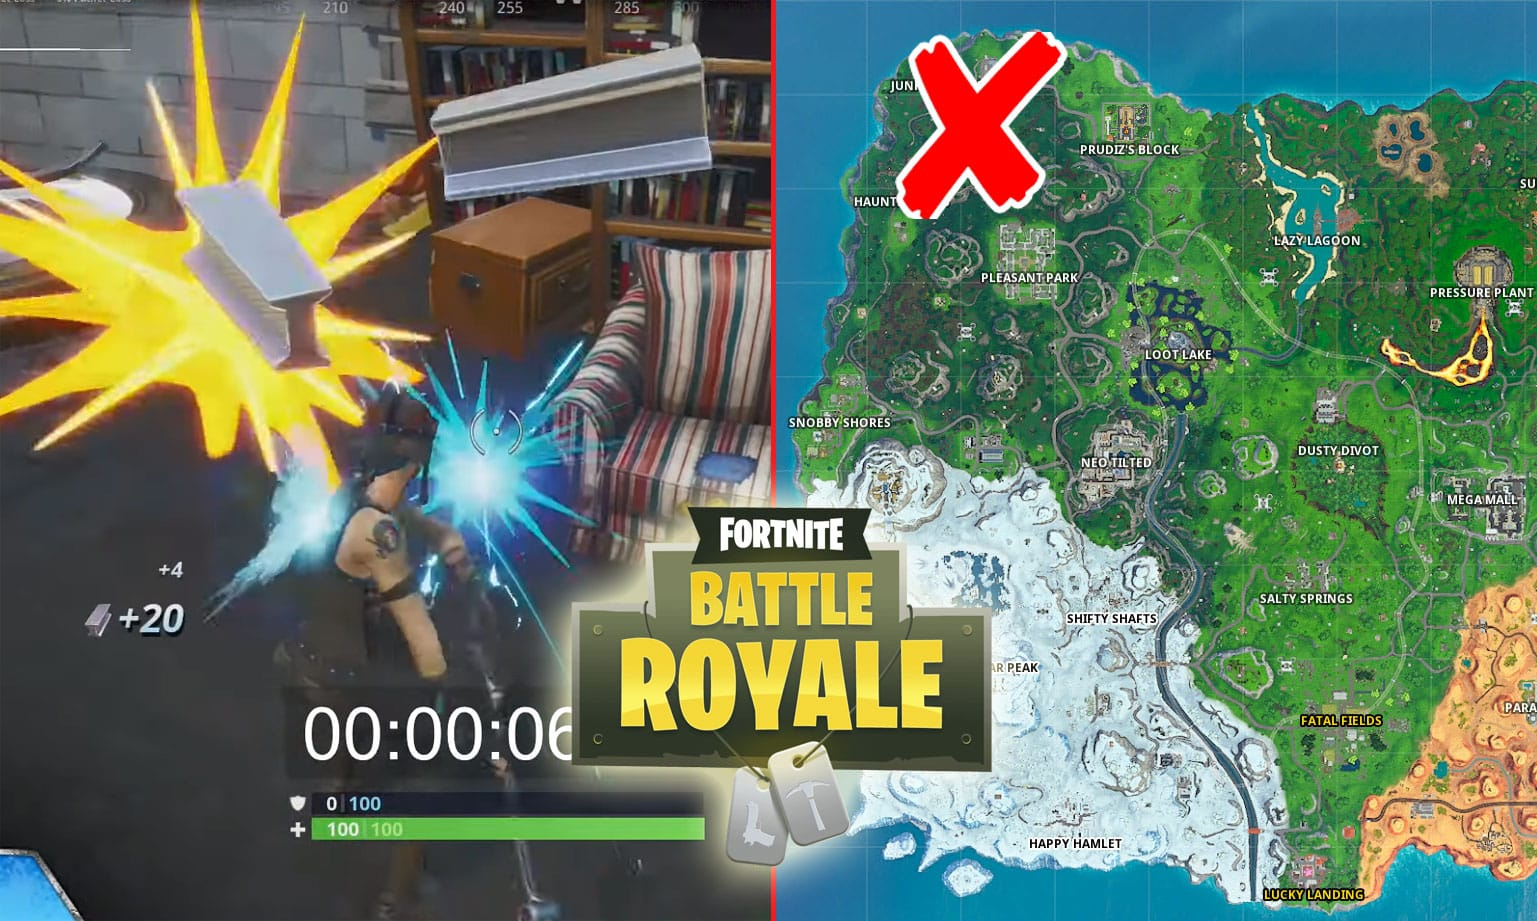 Collect 100 Material In Fortnite Challenge Guide [Smash and Grab]